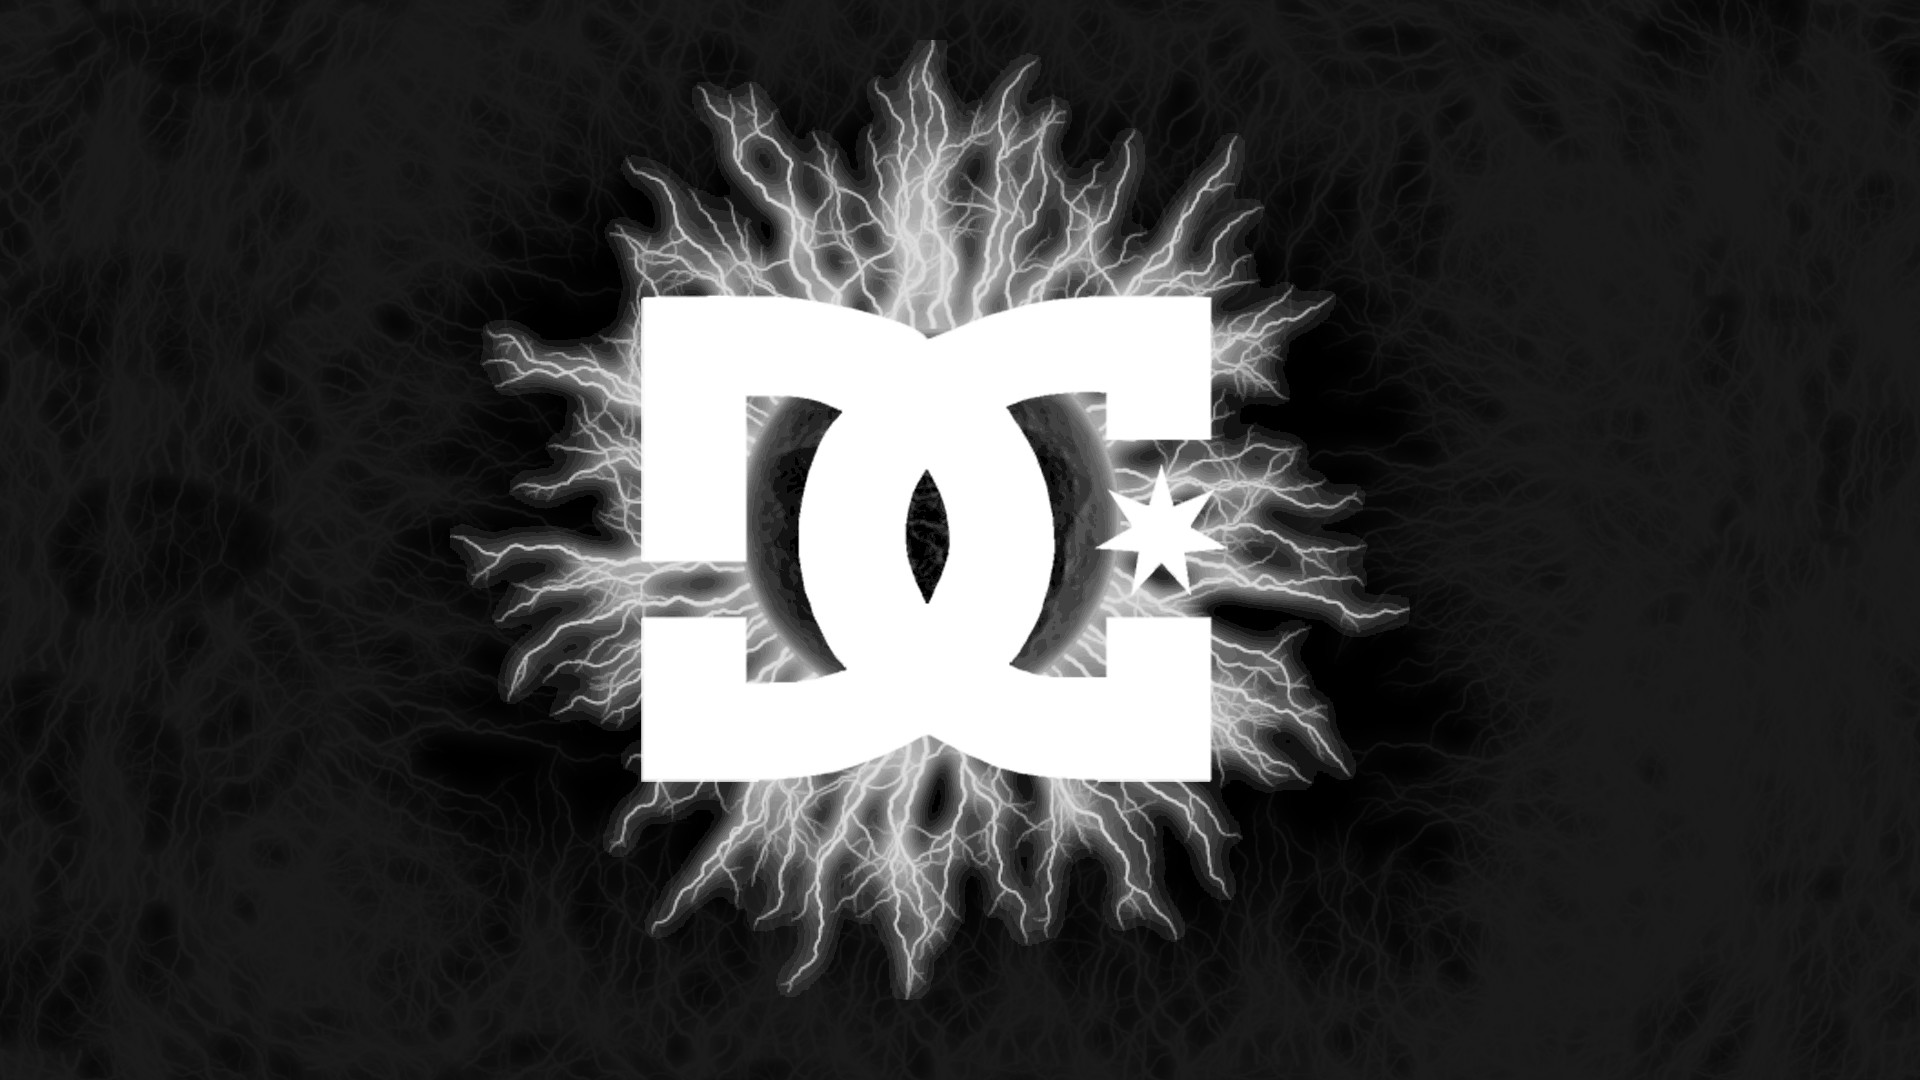 1920x1080 DC Shoes HD Wallpaper | Background Image |  | ID:413586 - Wallpaper  Abyss